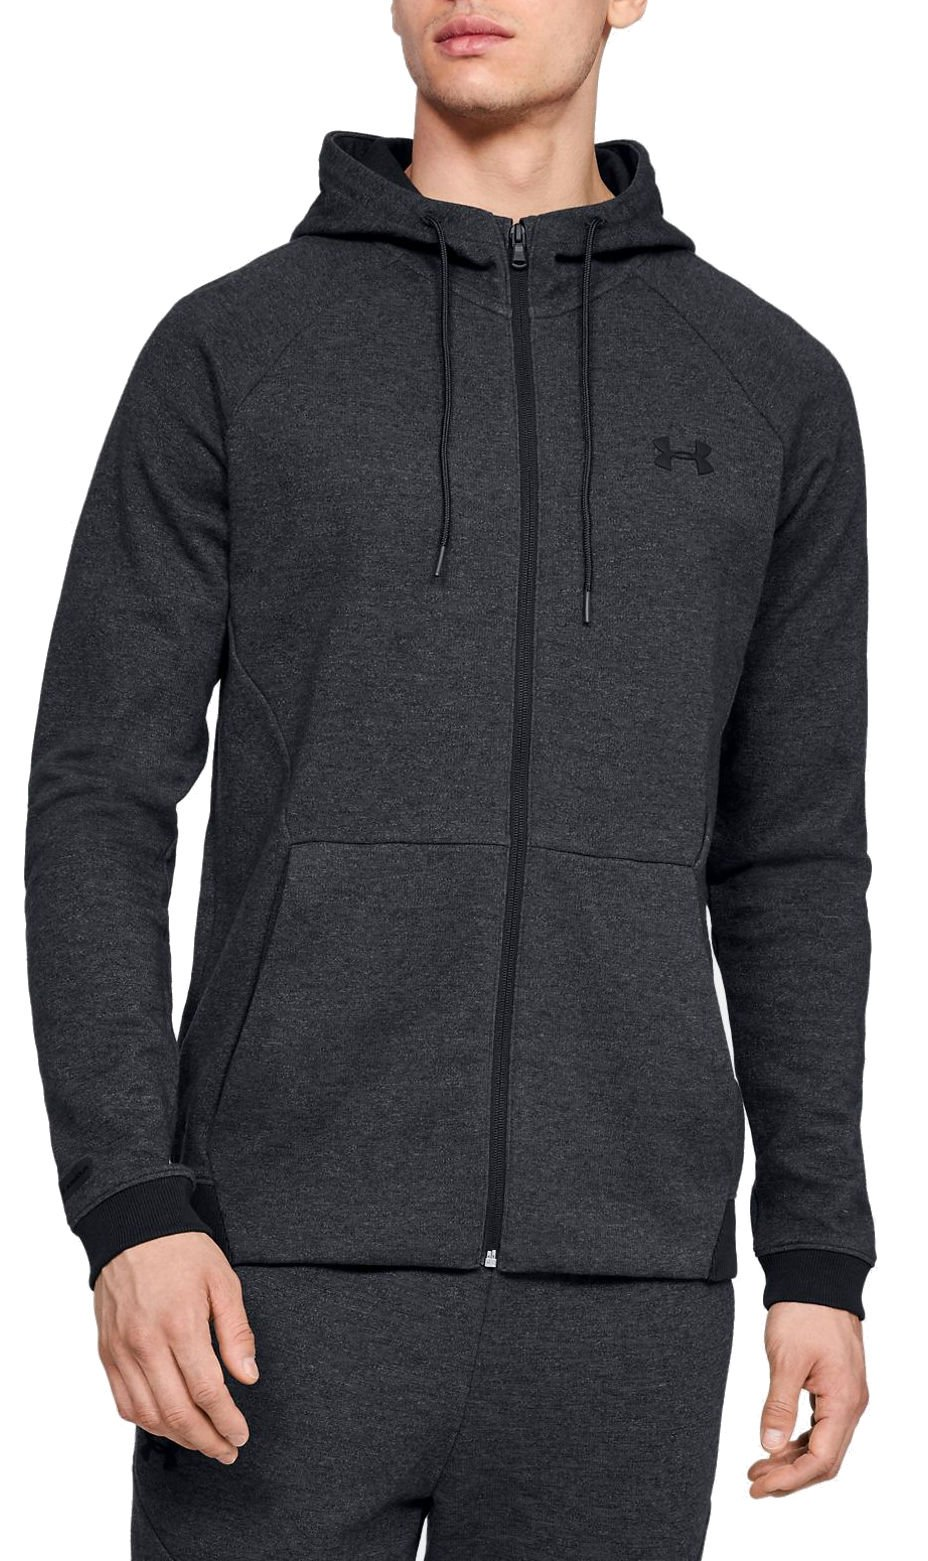 Felpe con cappuccio Under Armour UA Unstoppable 2X Knit